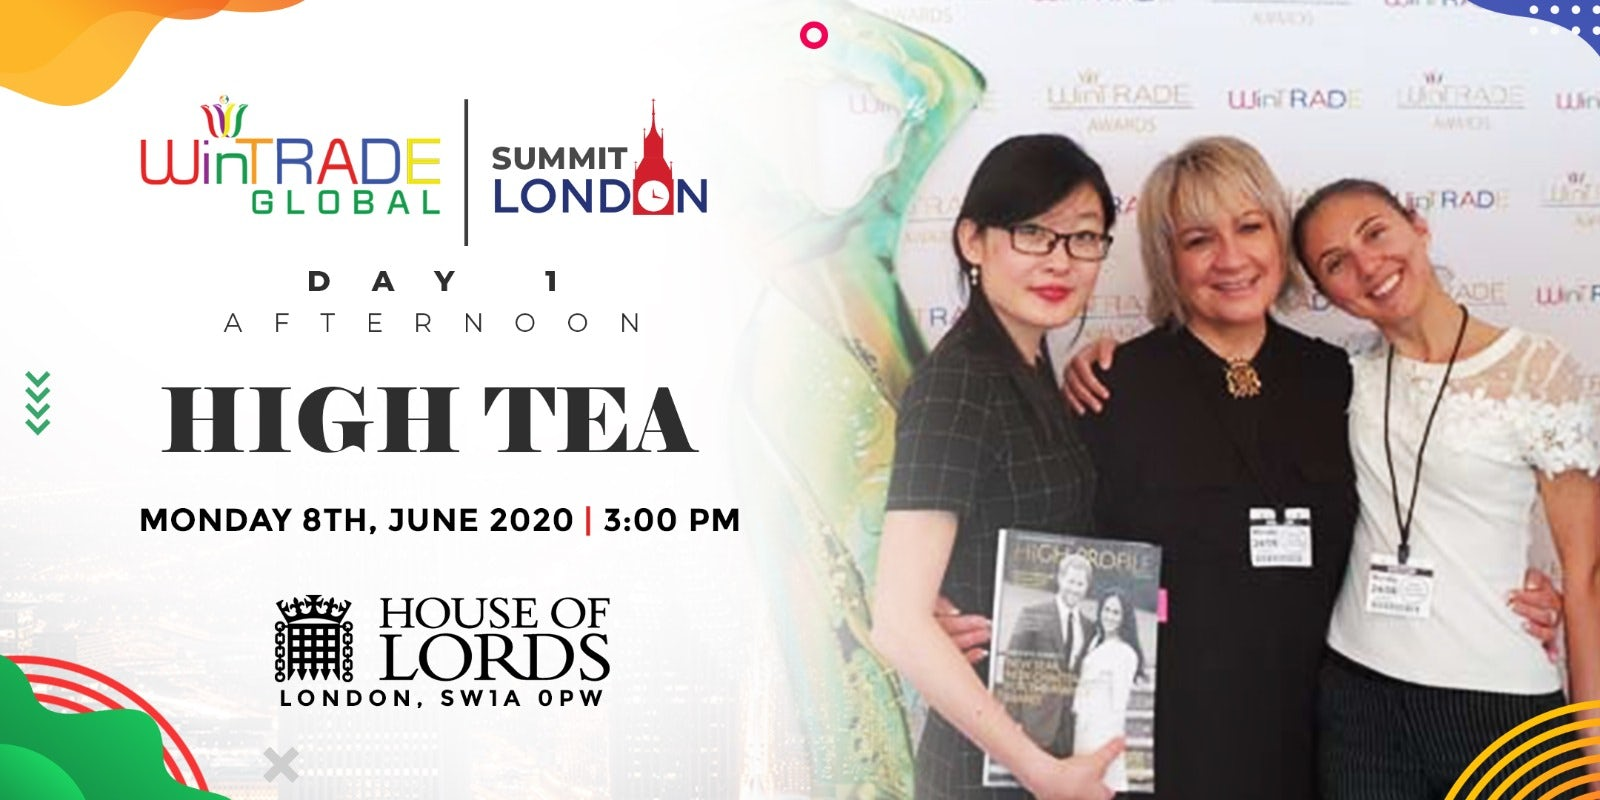 WinTrade Global - High Tea House Of Lords